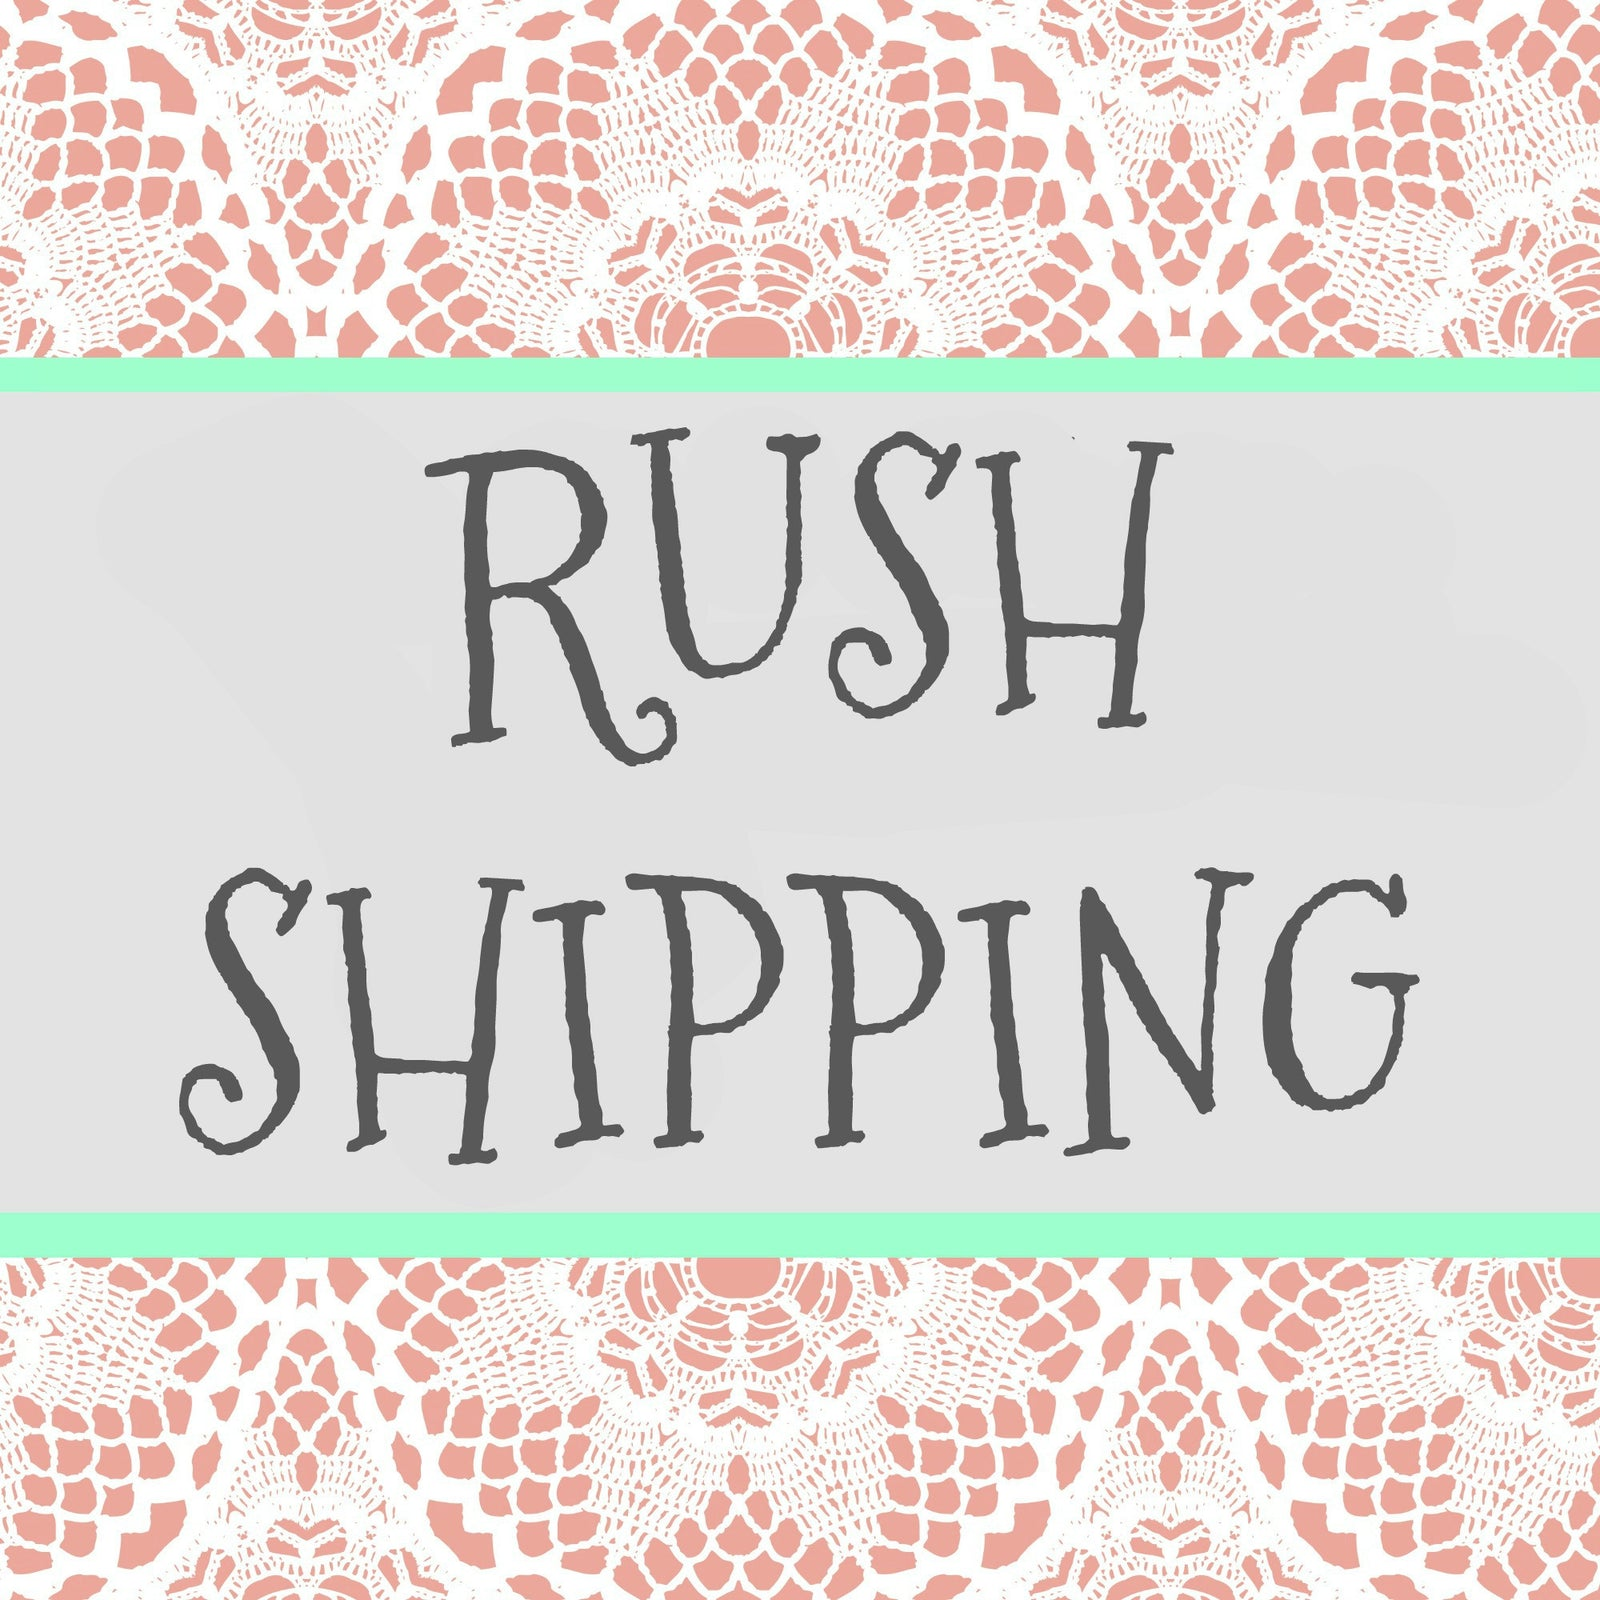 Rush Shipping - Be Girl Clothing